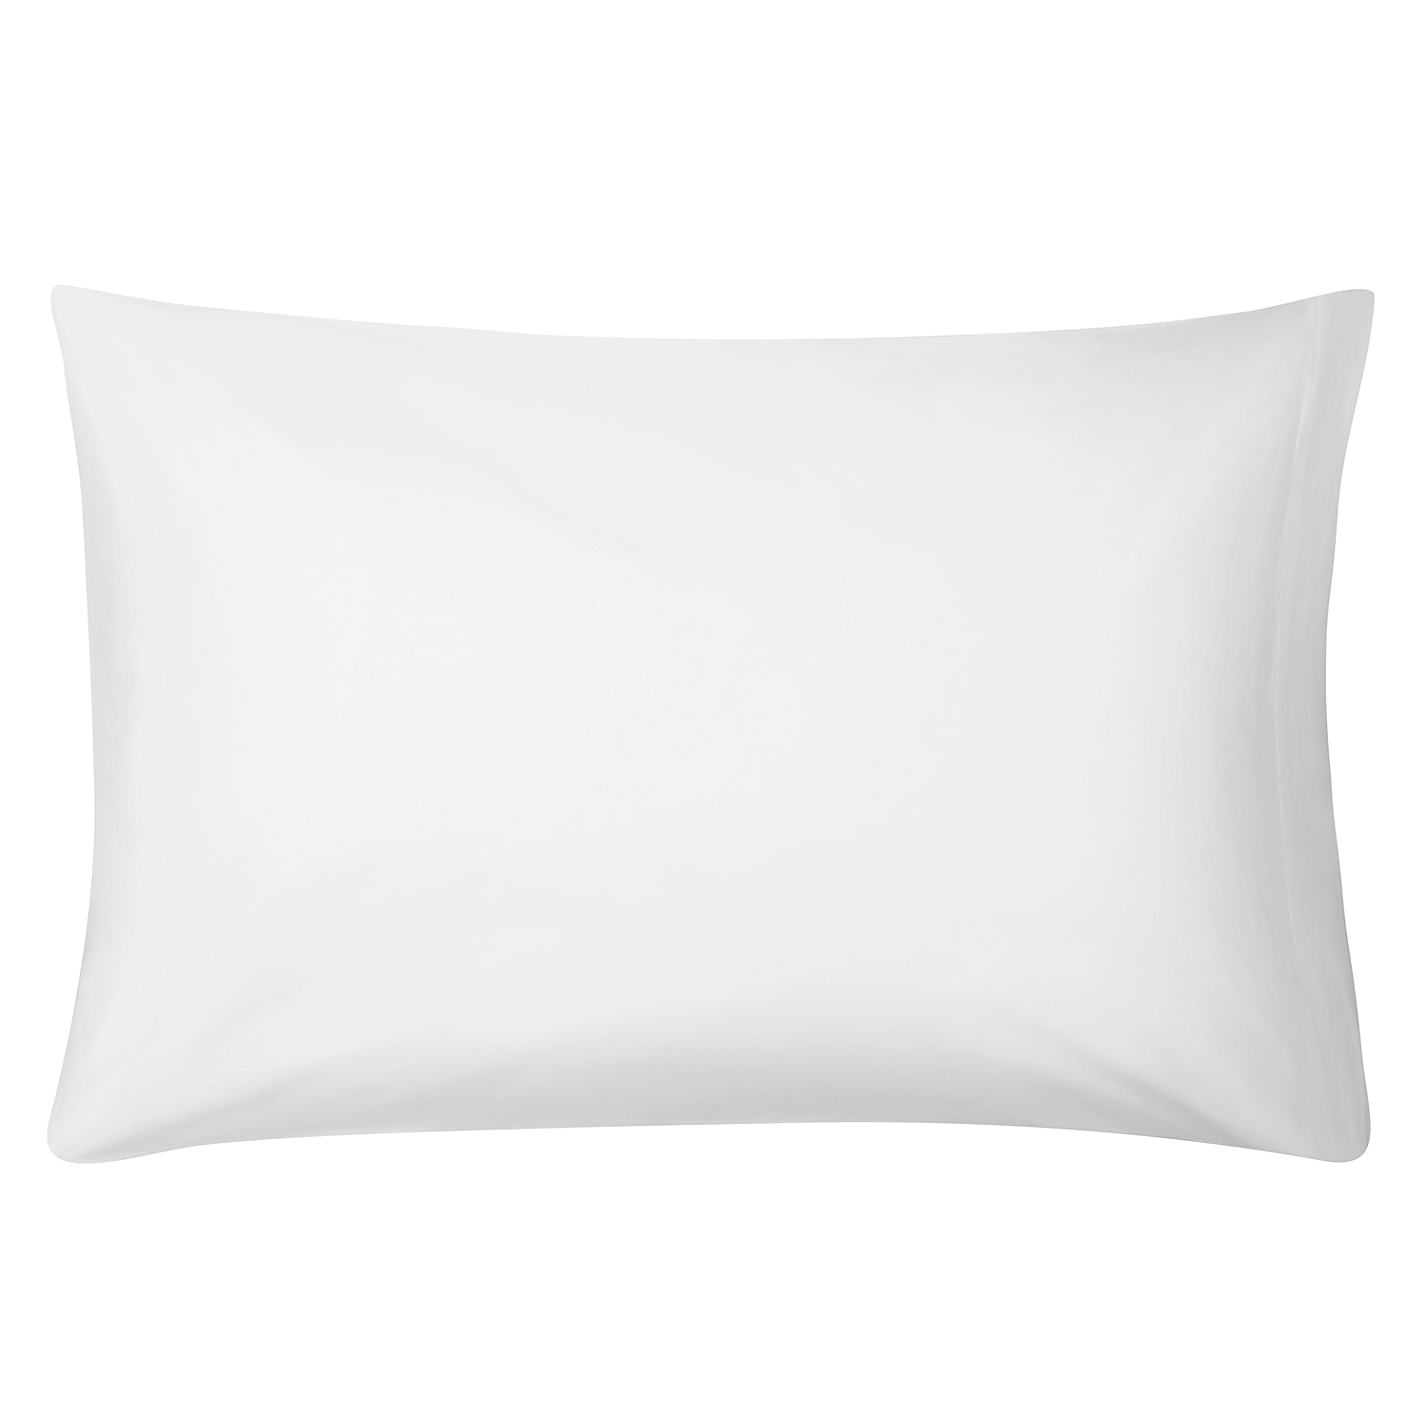 Linen Duvet Cover Queen | White Duvet Cover | Crate and Barrel Duvet Covers